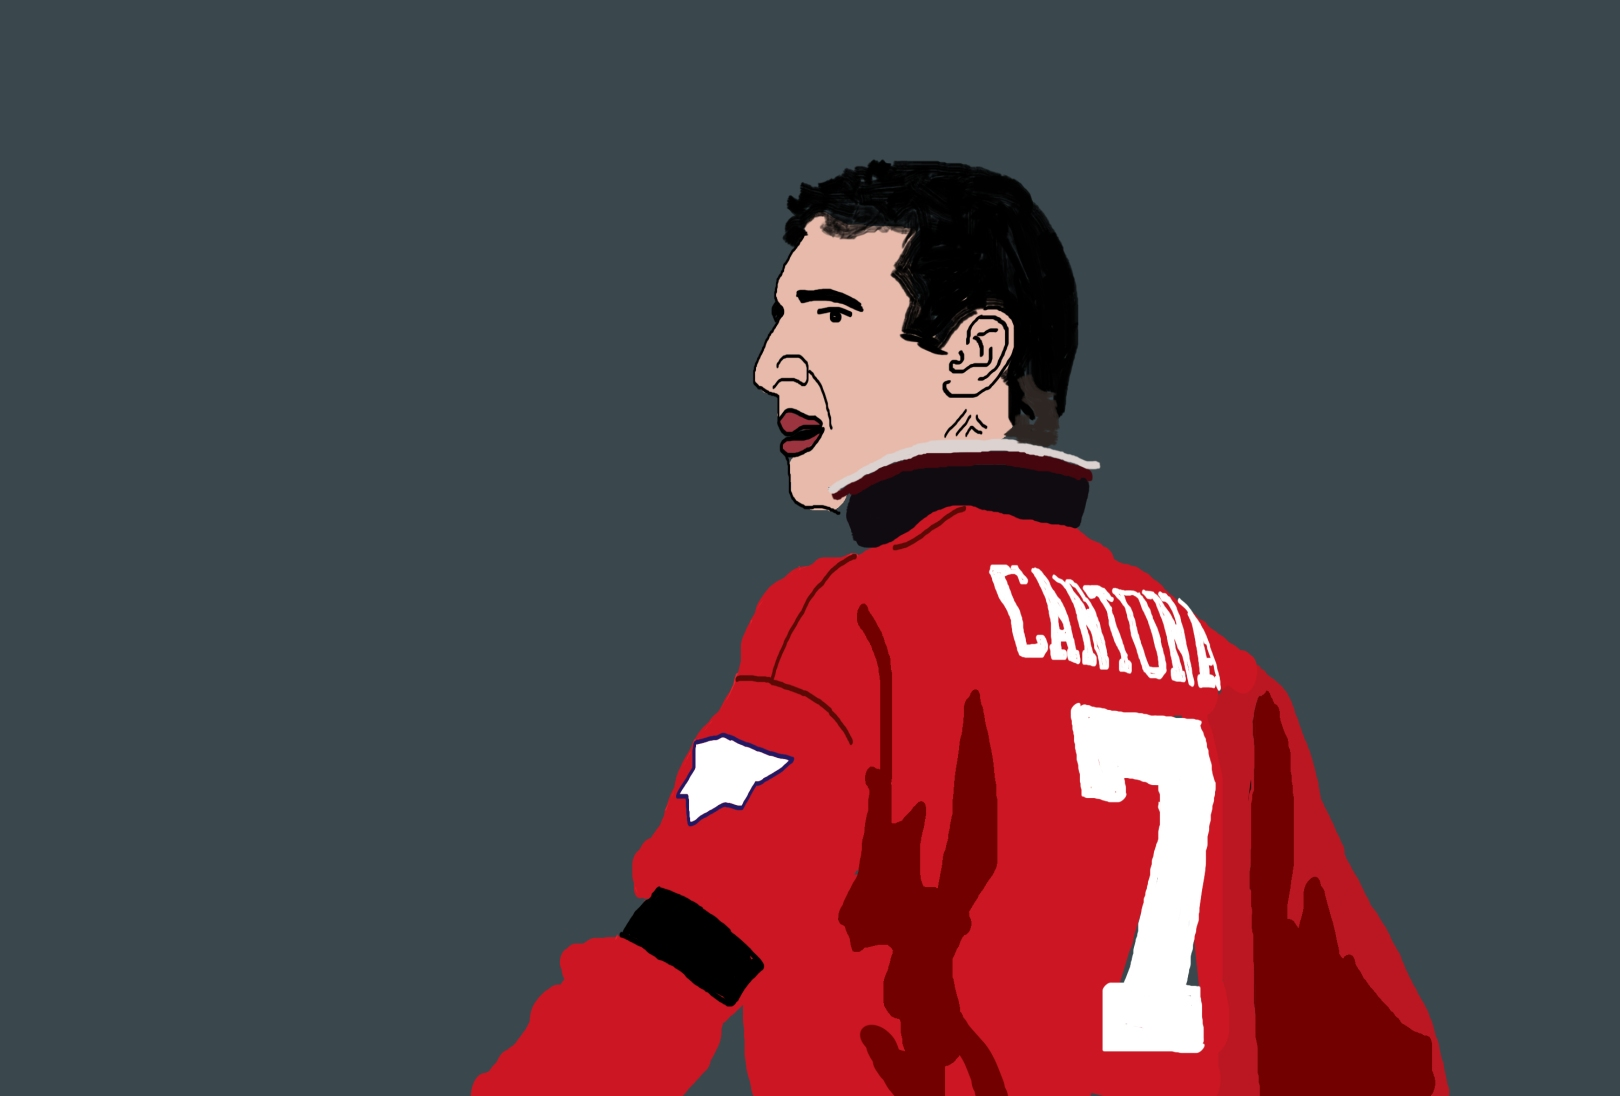 Eric Cantona Manchester United illustration